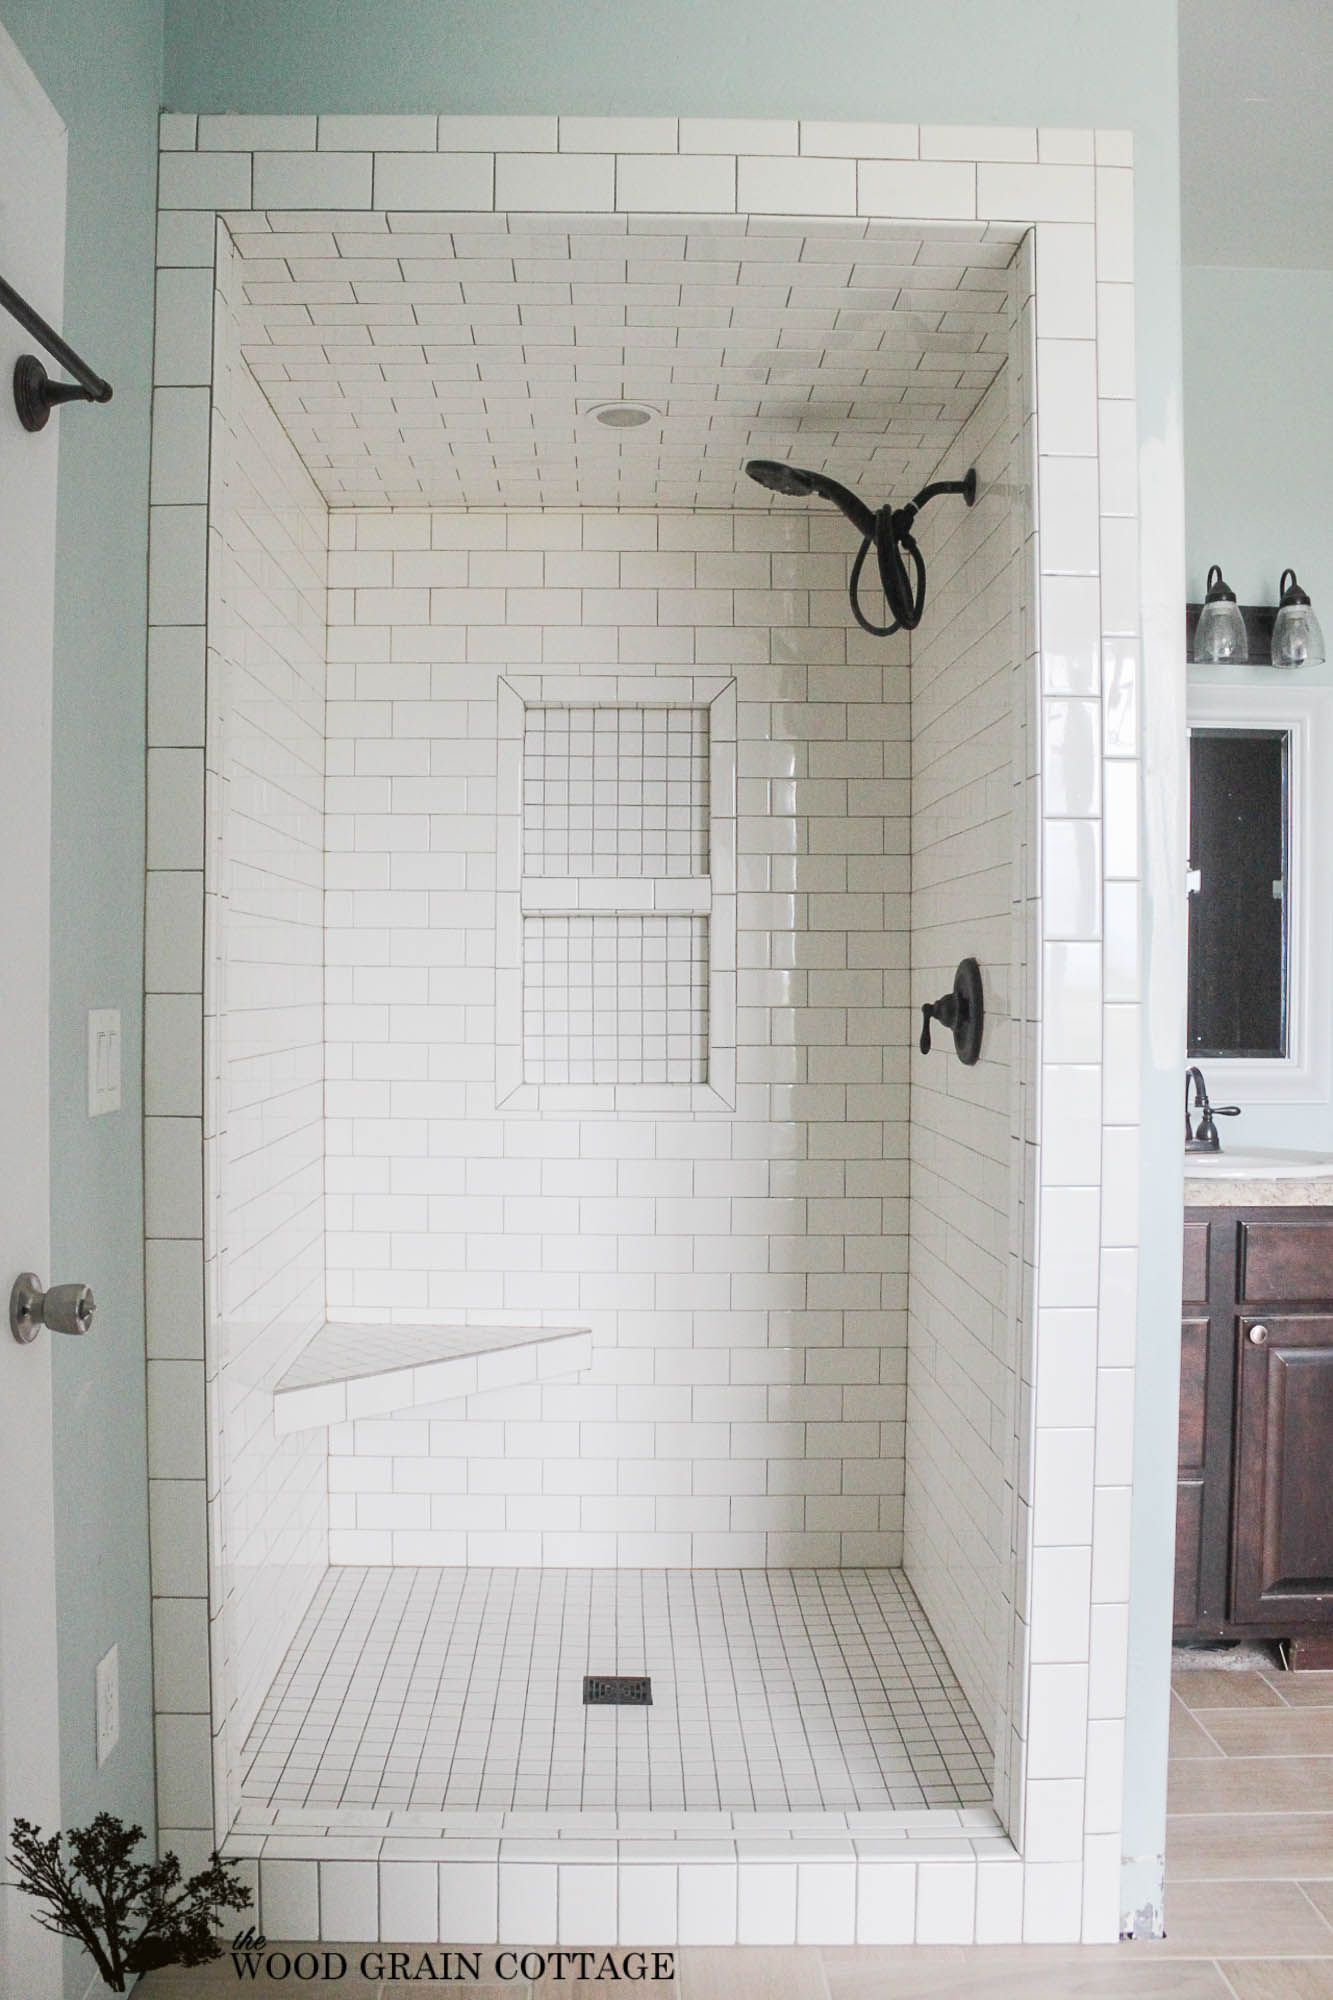 Bathroom Tiles Renovation new master bathroom tile | subway tile showers, tile showers and